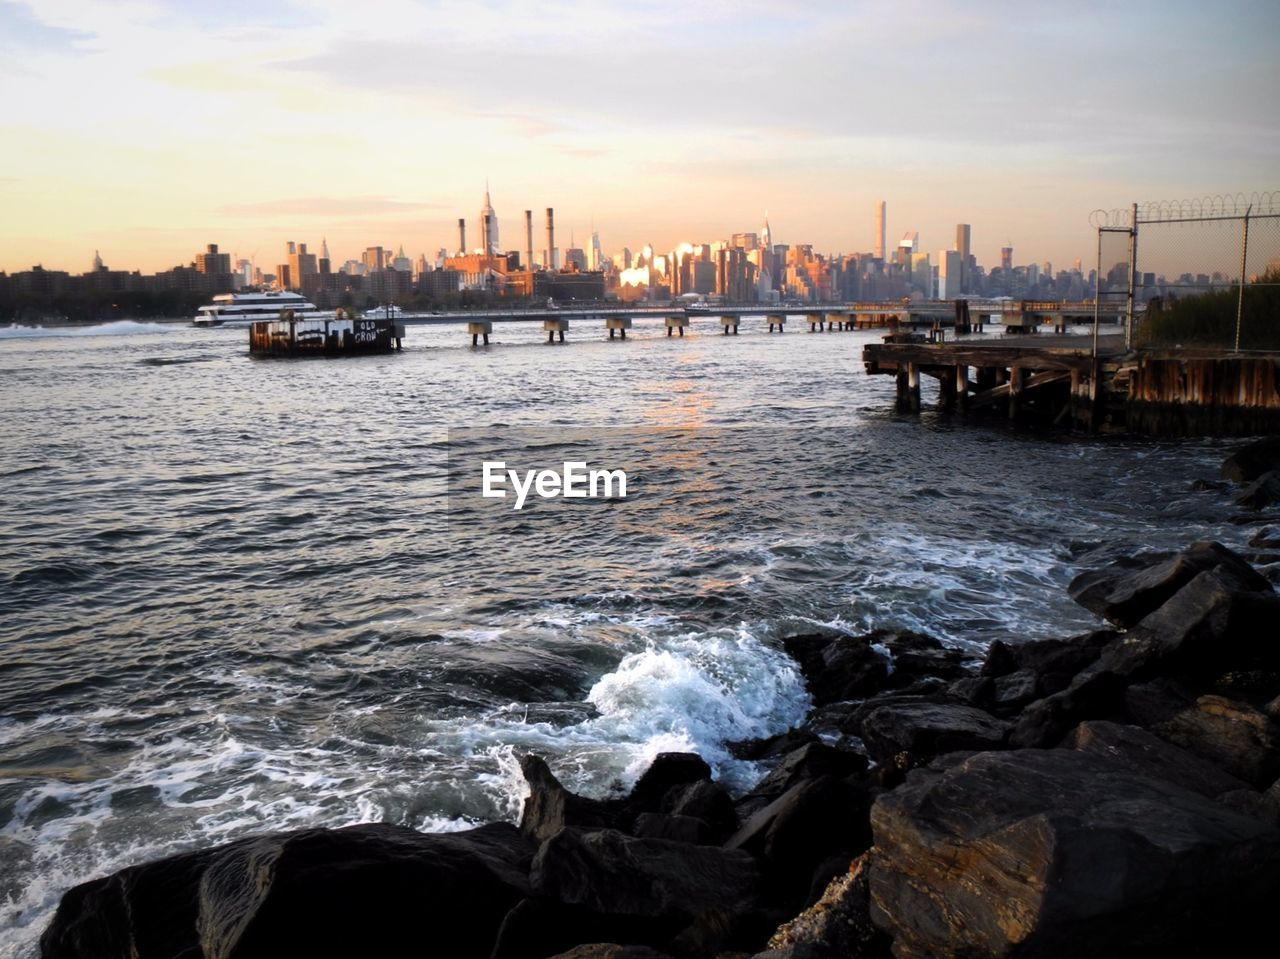 water, sky, architecture, built structure, city, building exterior, sunset, skyscraper, sea, cloud - sky, nature, urban skyline, no people, waterfront, outdoors, travel destinations, cityscape, beauty in nature, nautical vessel, day